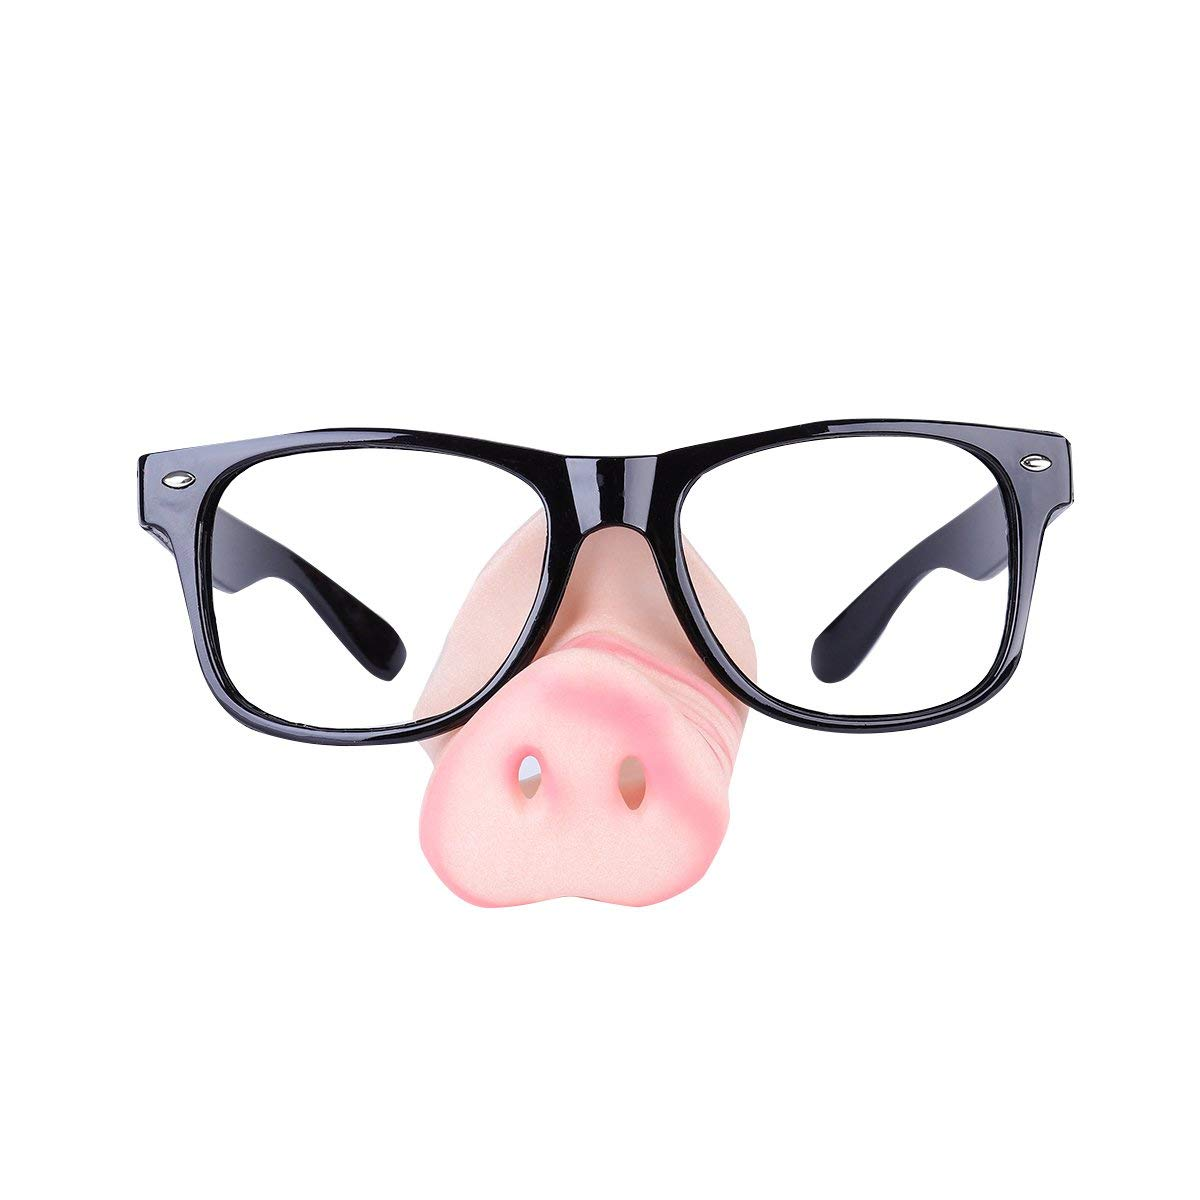 b42cef2190 Get Quotations · Tinksky Pig Nose Sunglasses  Specs Glass Square Frame Fancy  Dress Piggy Snout Eye-catching